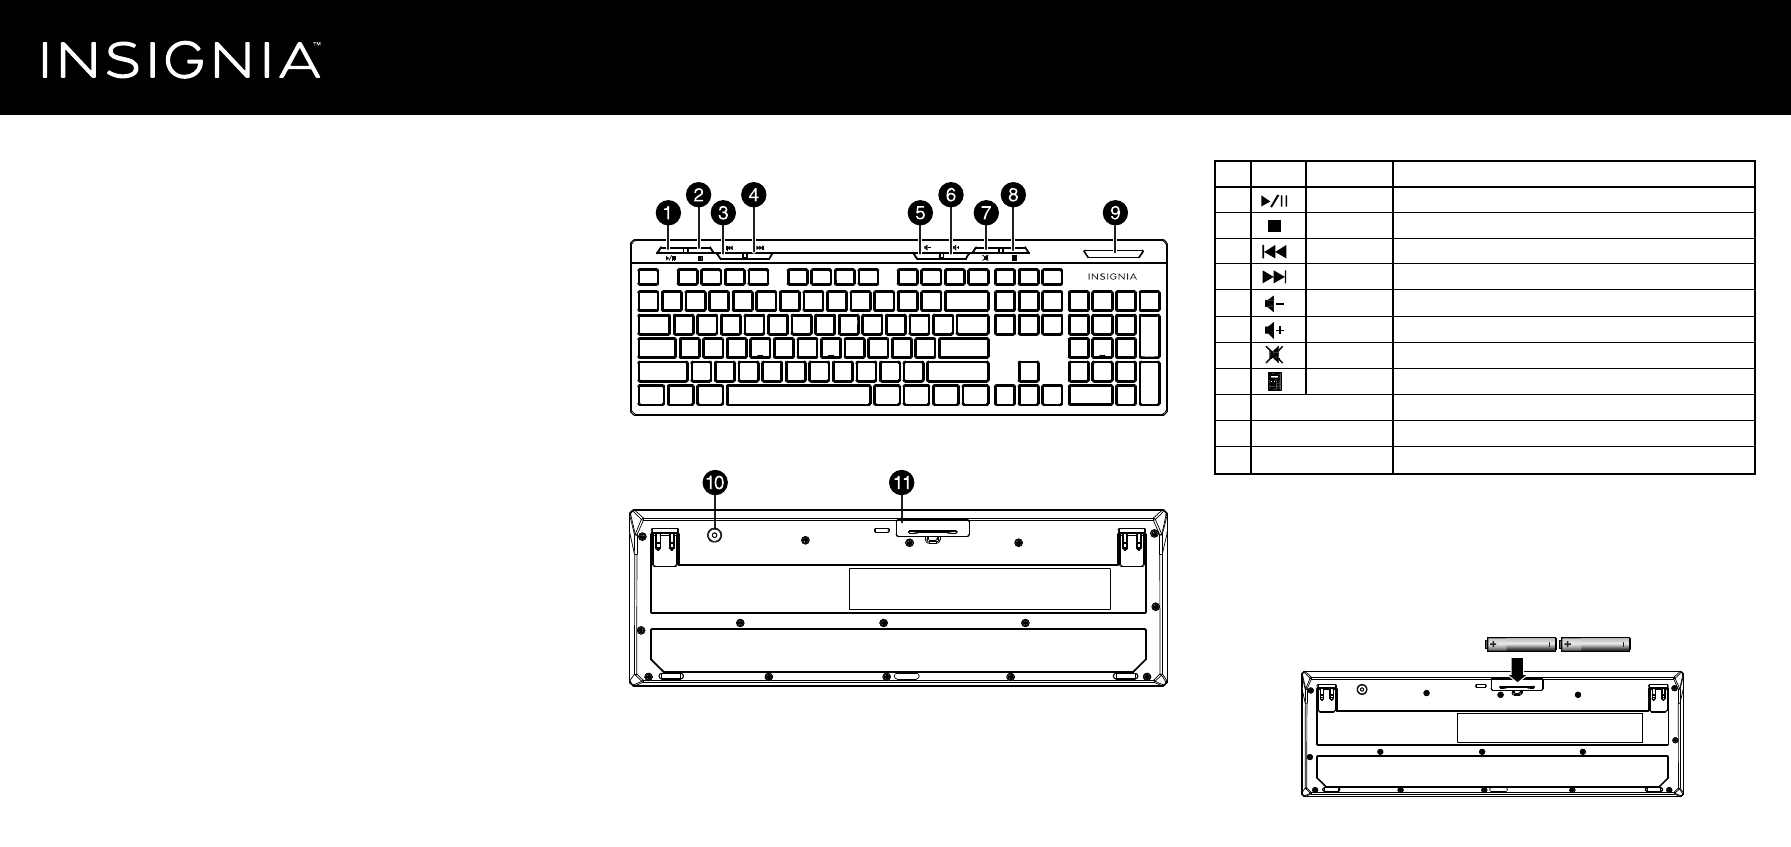 Download Insignia Computer Keyboard NS-PNK5011 manual and